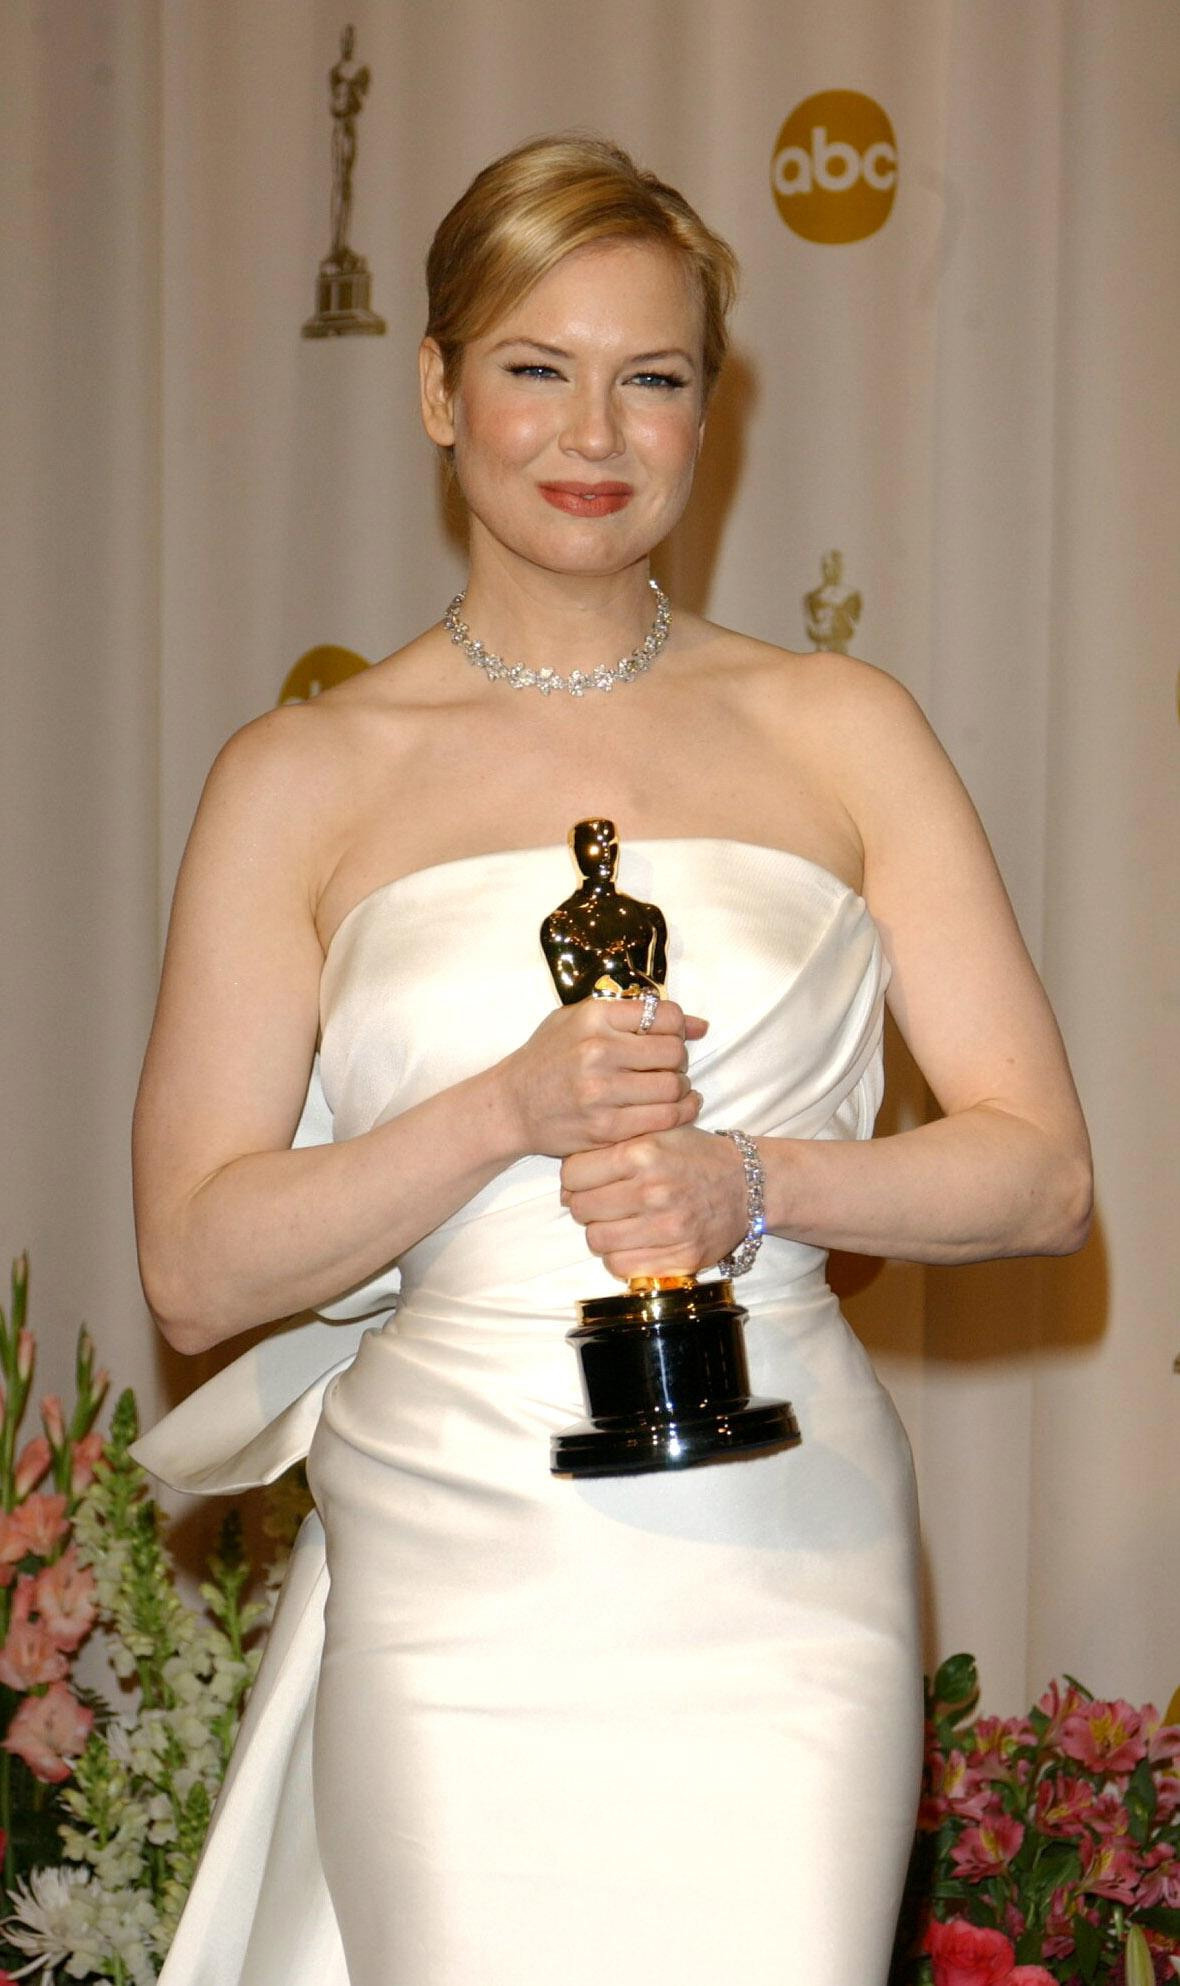 Actress Renee Zellweger with her Oscar for Best Actress in a Supporting Role at the Kodak Theatre in Los Angeles during the 76th Academy Awards in 2004.